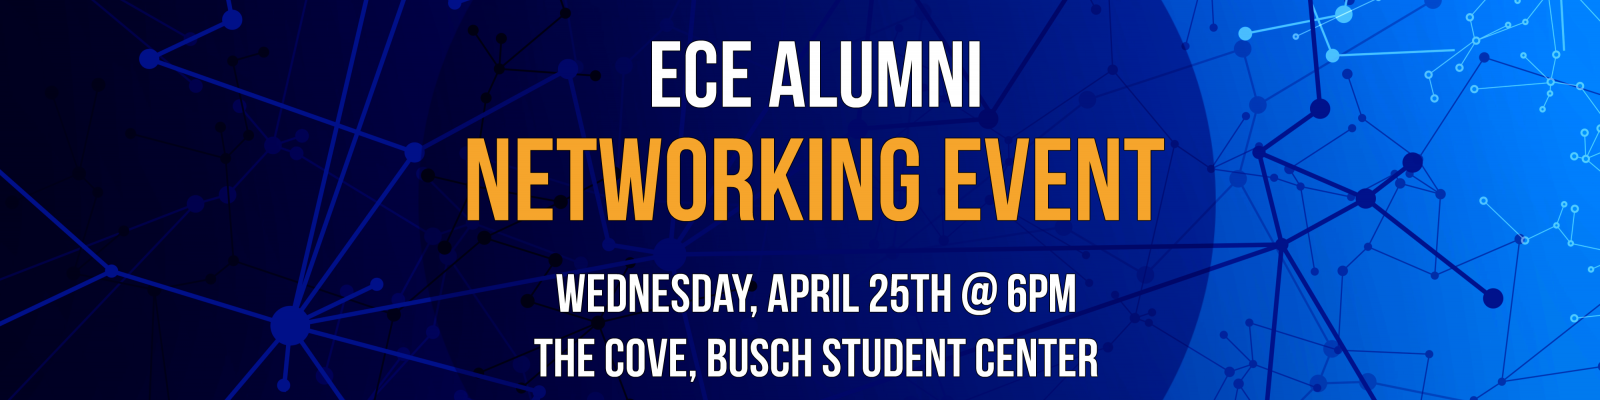 ECE Alumni Networking Event